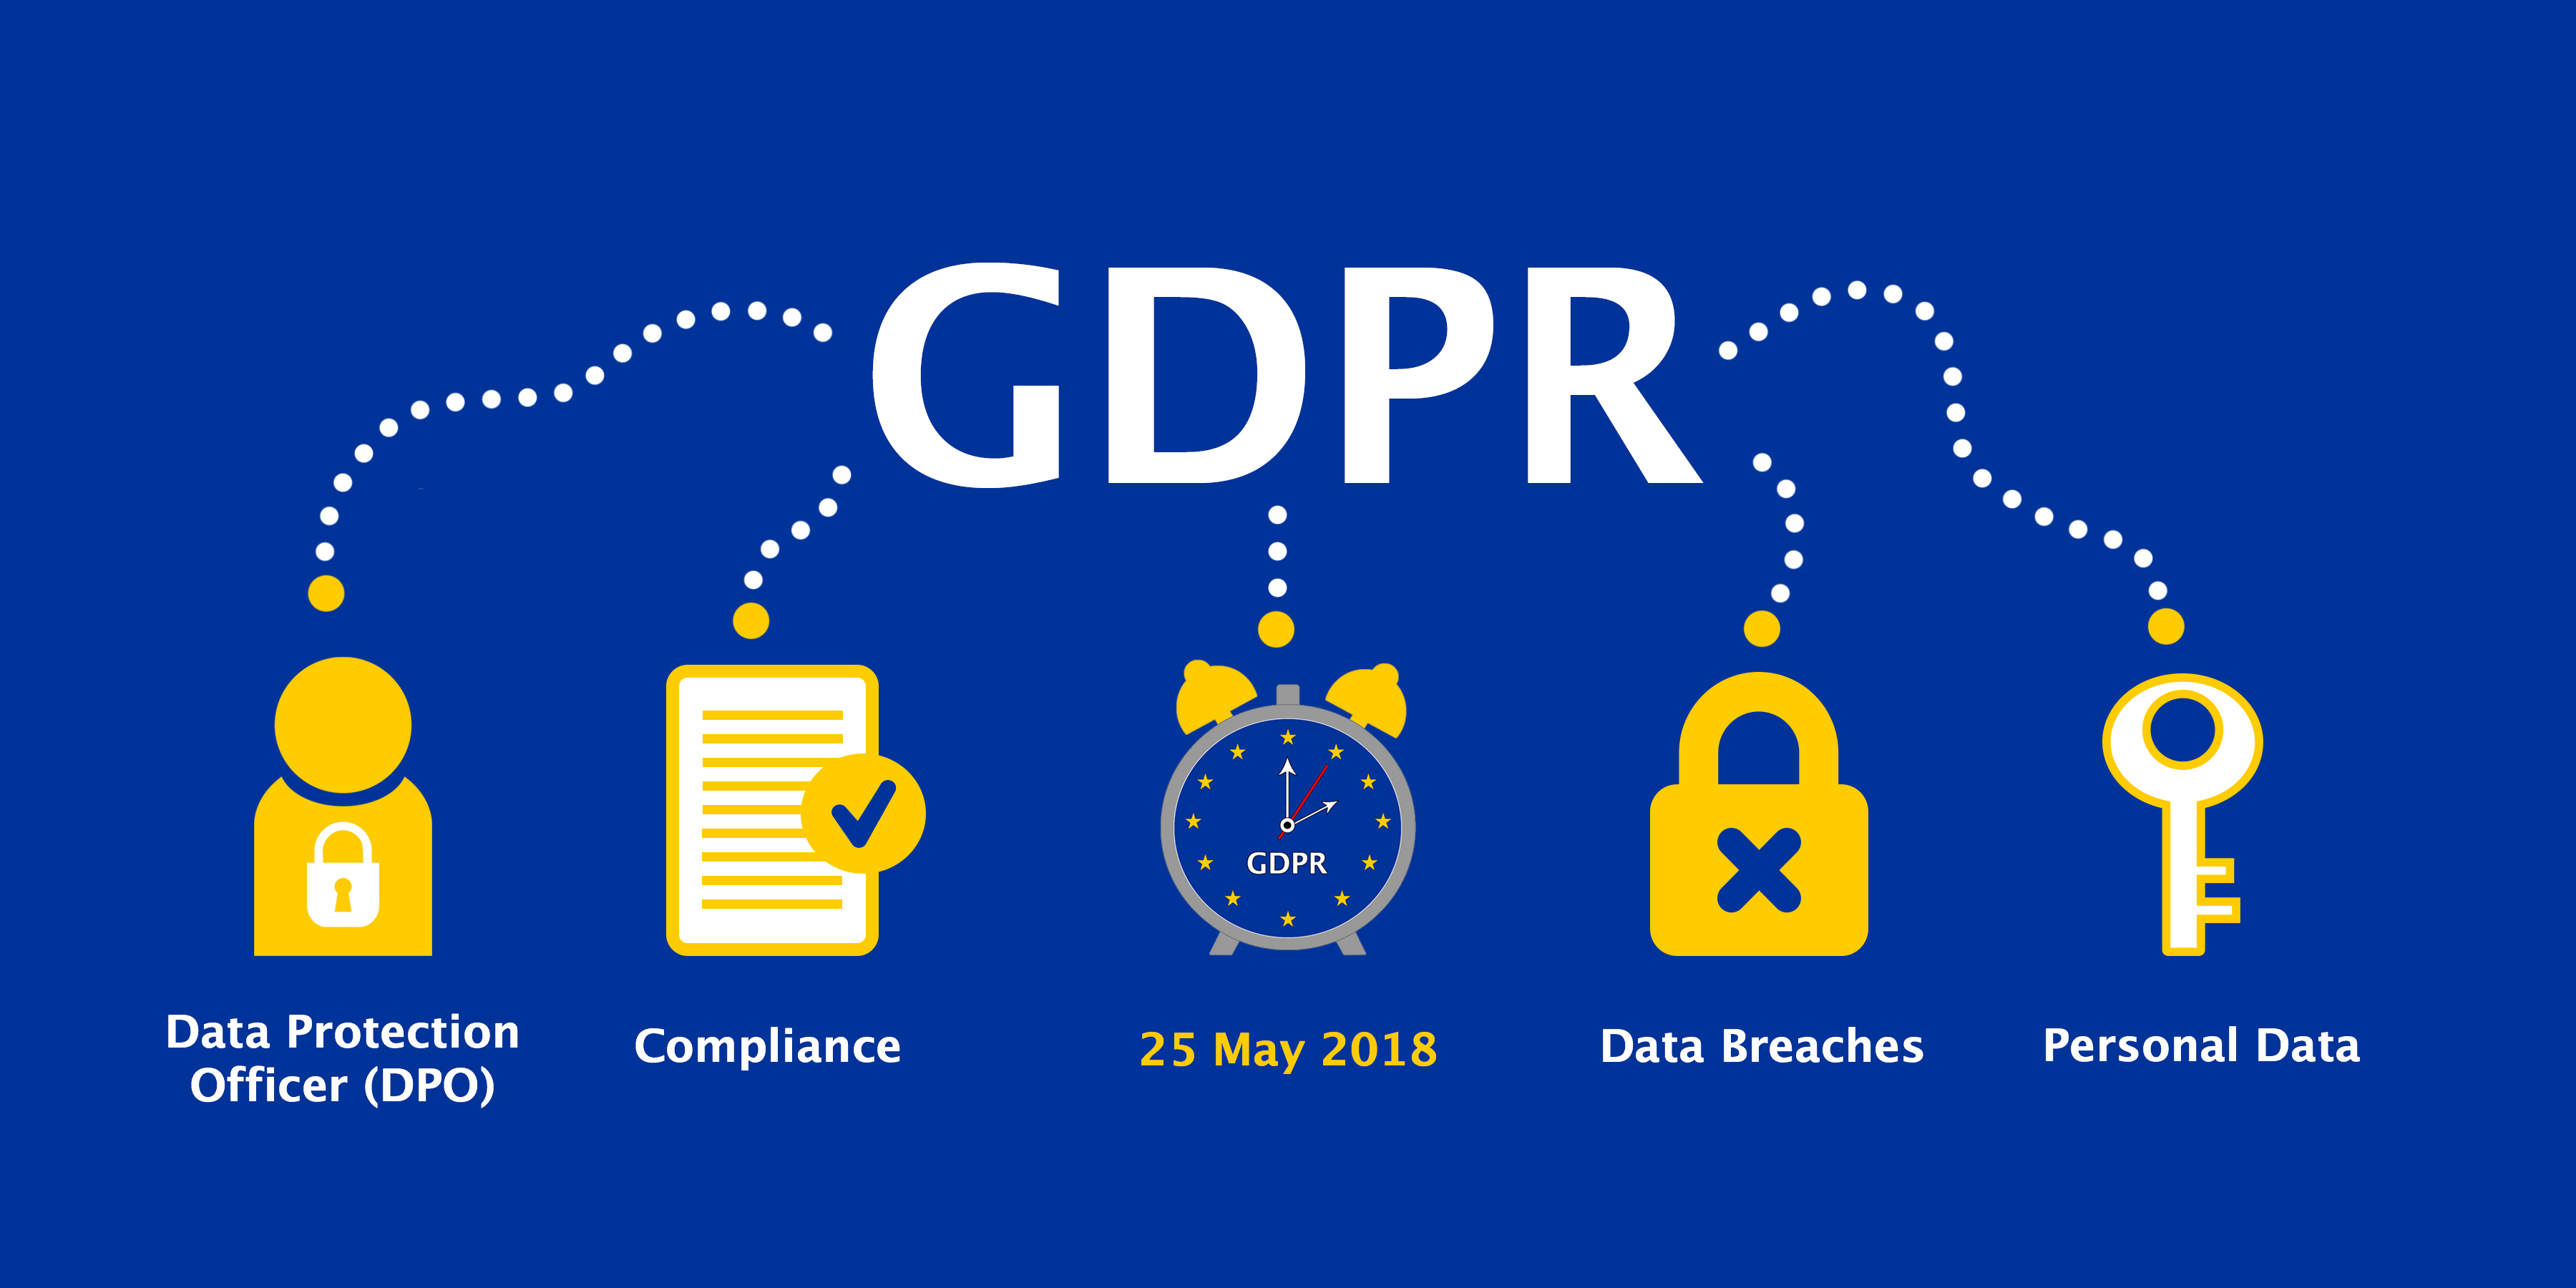 gdpr_how_hr_teams_can_ensure_full_compliance_to_gdpr_regulations